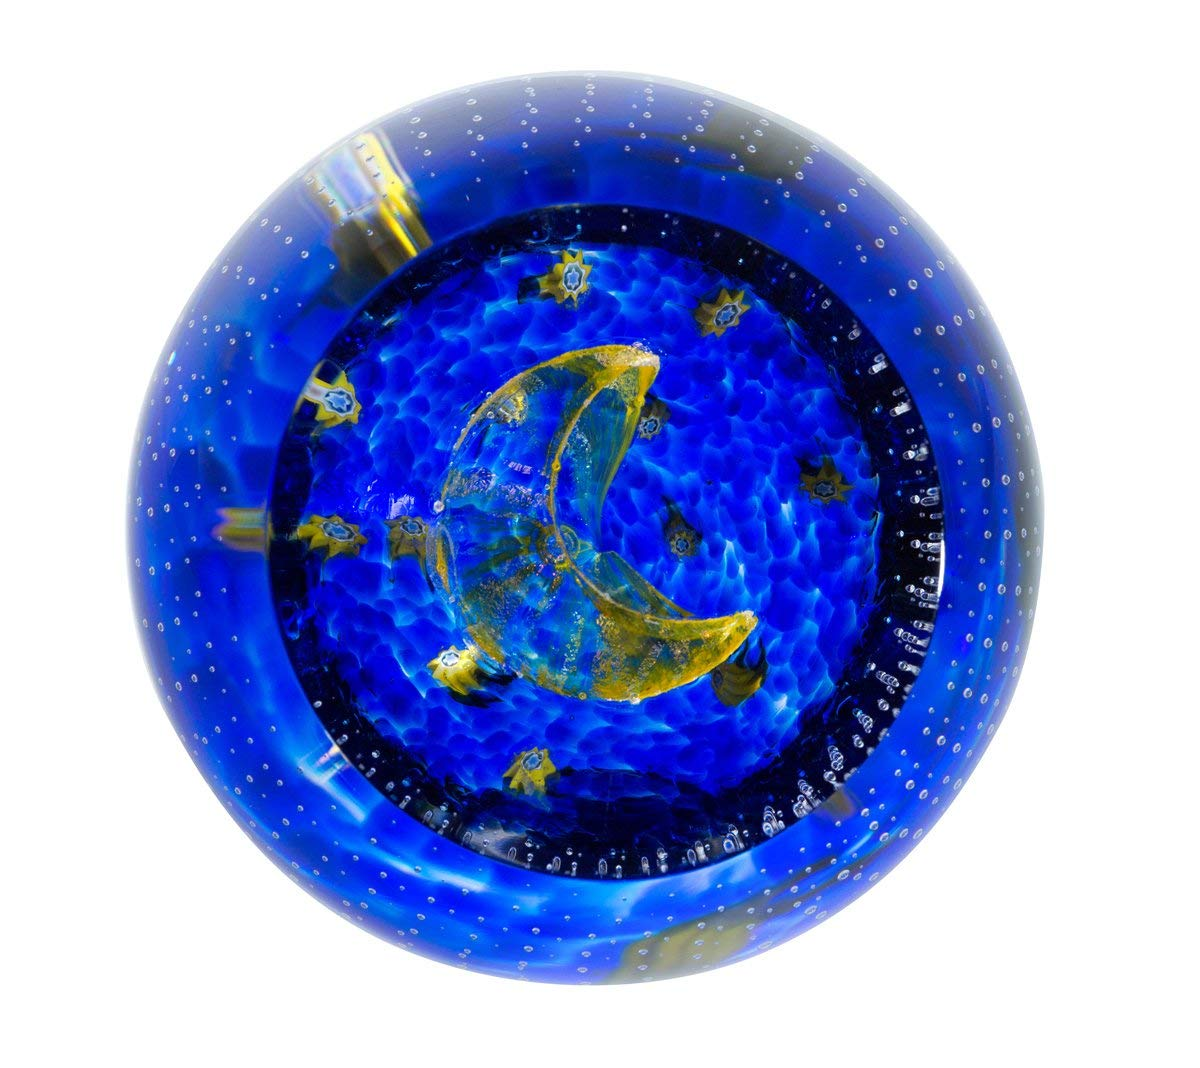 Caithness Glass Sentiments - to The Moon and Back Paperweight